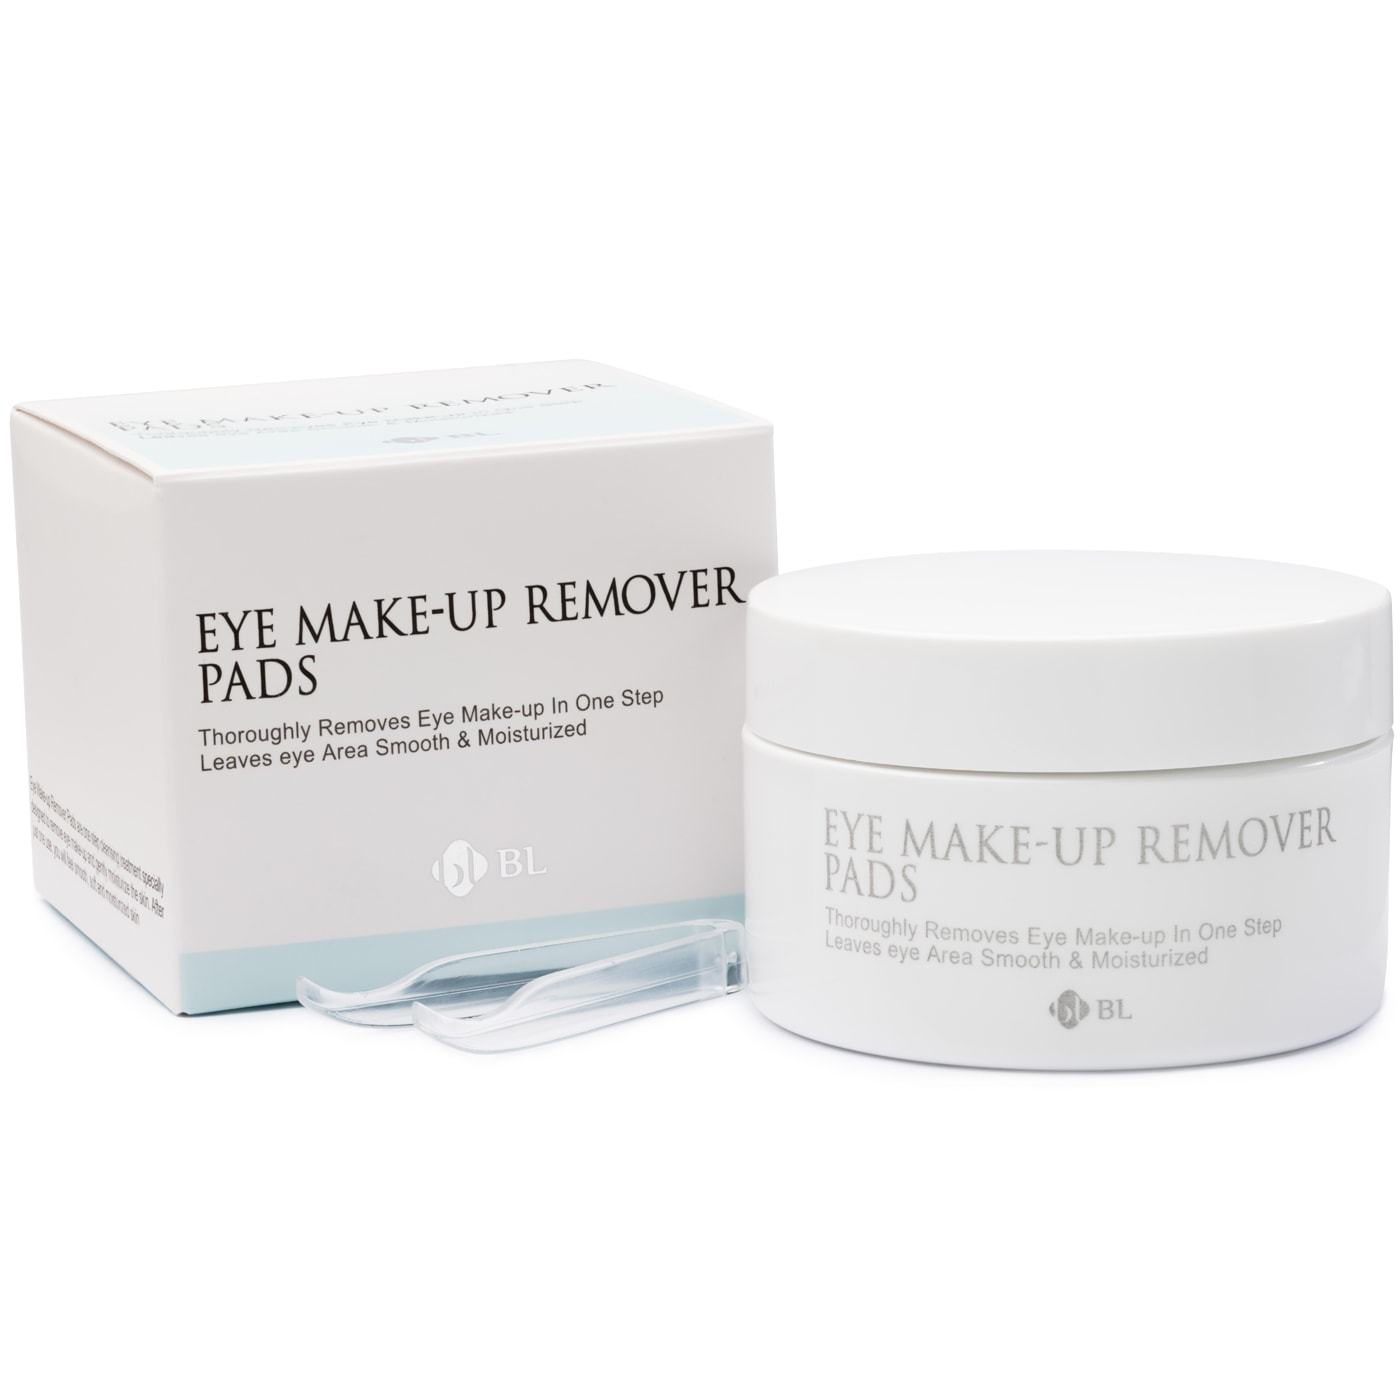 Eye Make- up Remover Pads